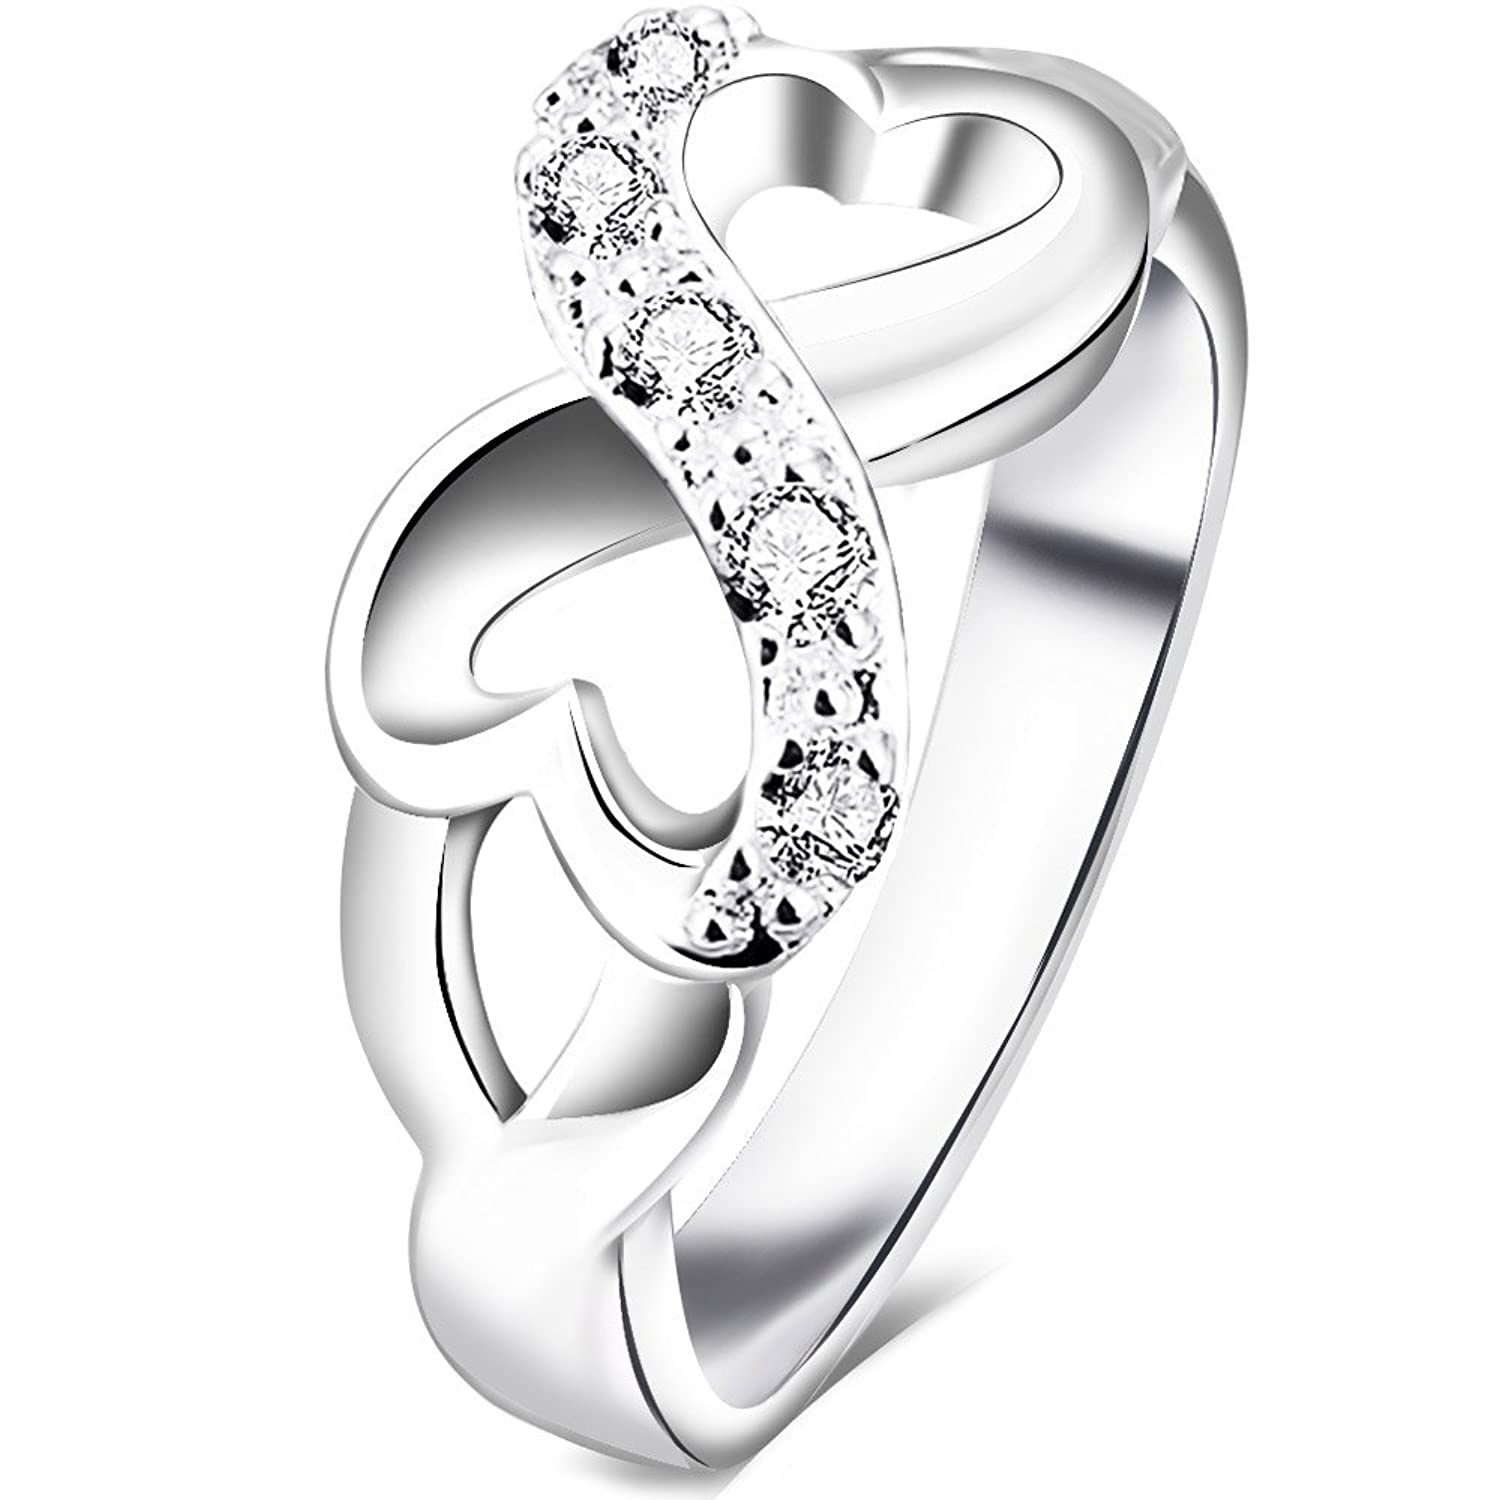 BOHG Jewelry Womens 925 Sterling Silver Plated Cubic Zirconia CZ Heart Infinity Symbol Ring Wedding Band